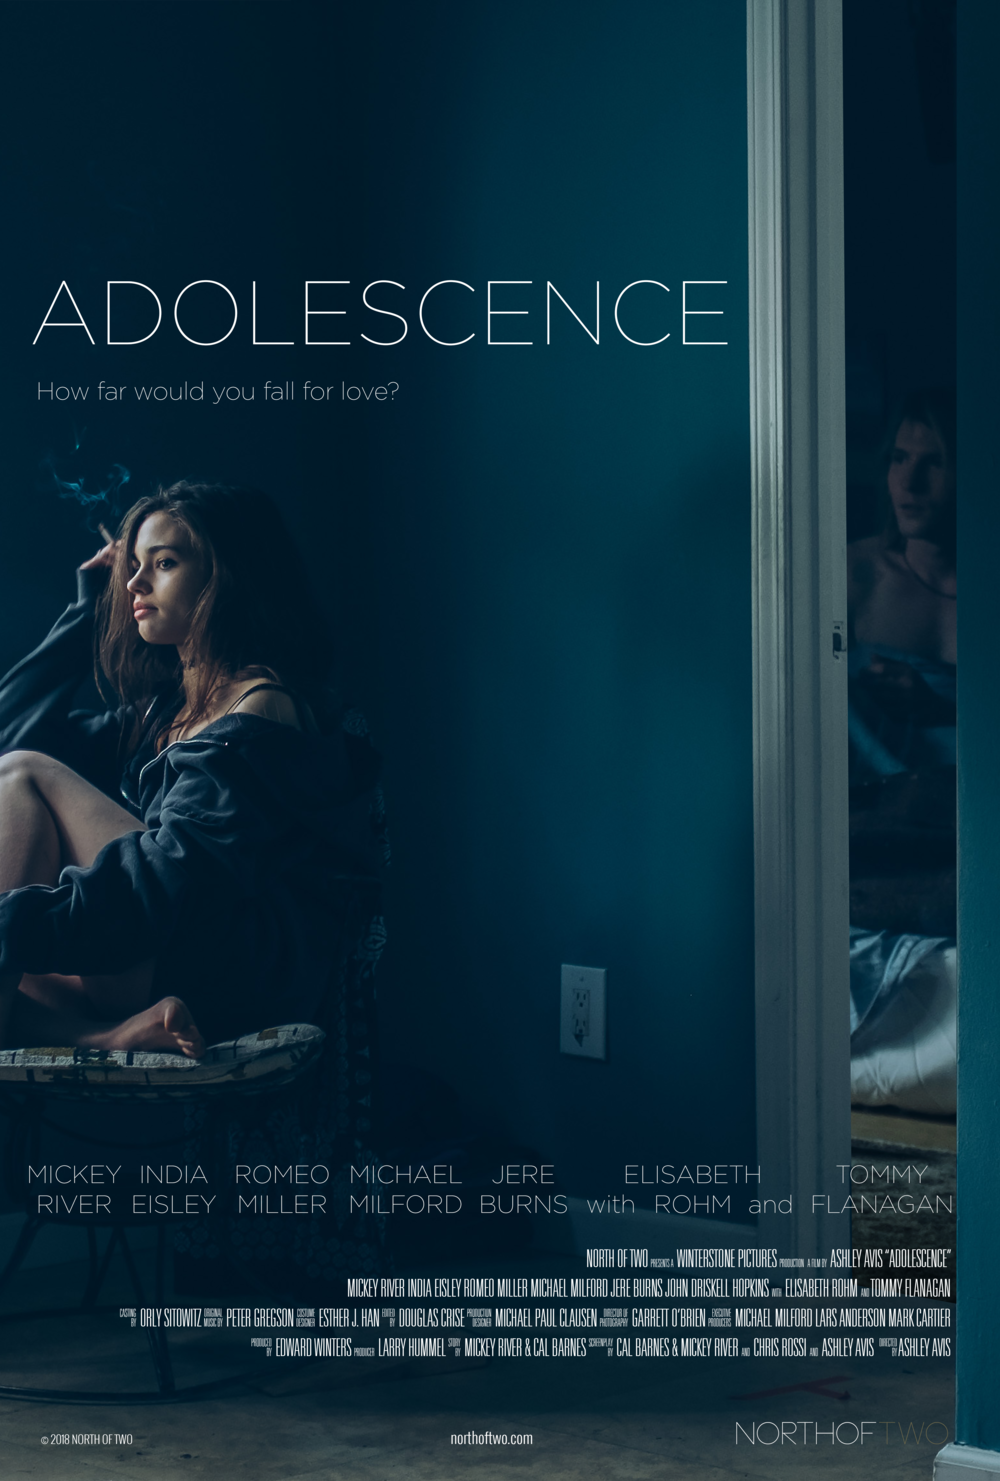 AdolescencePOSTER_nofilmbycredit.png